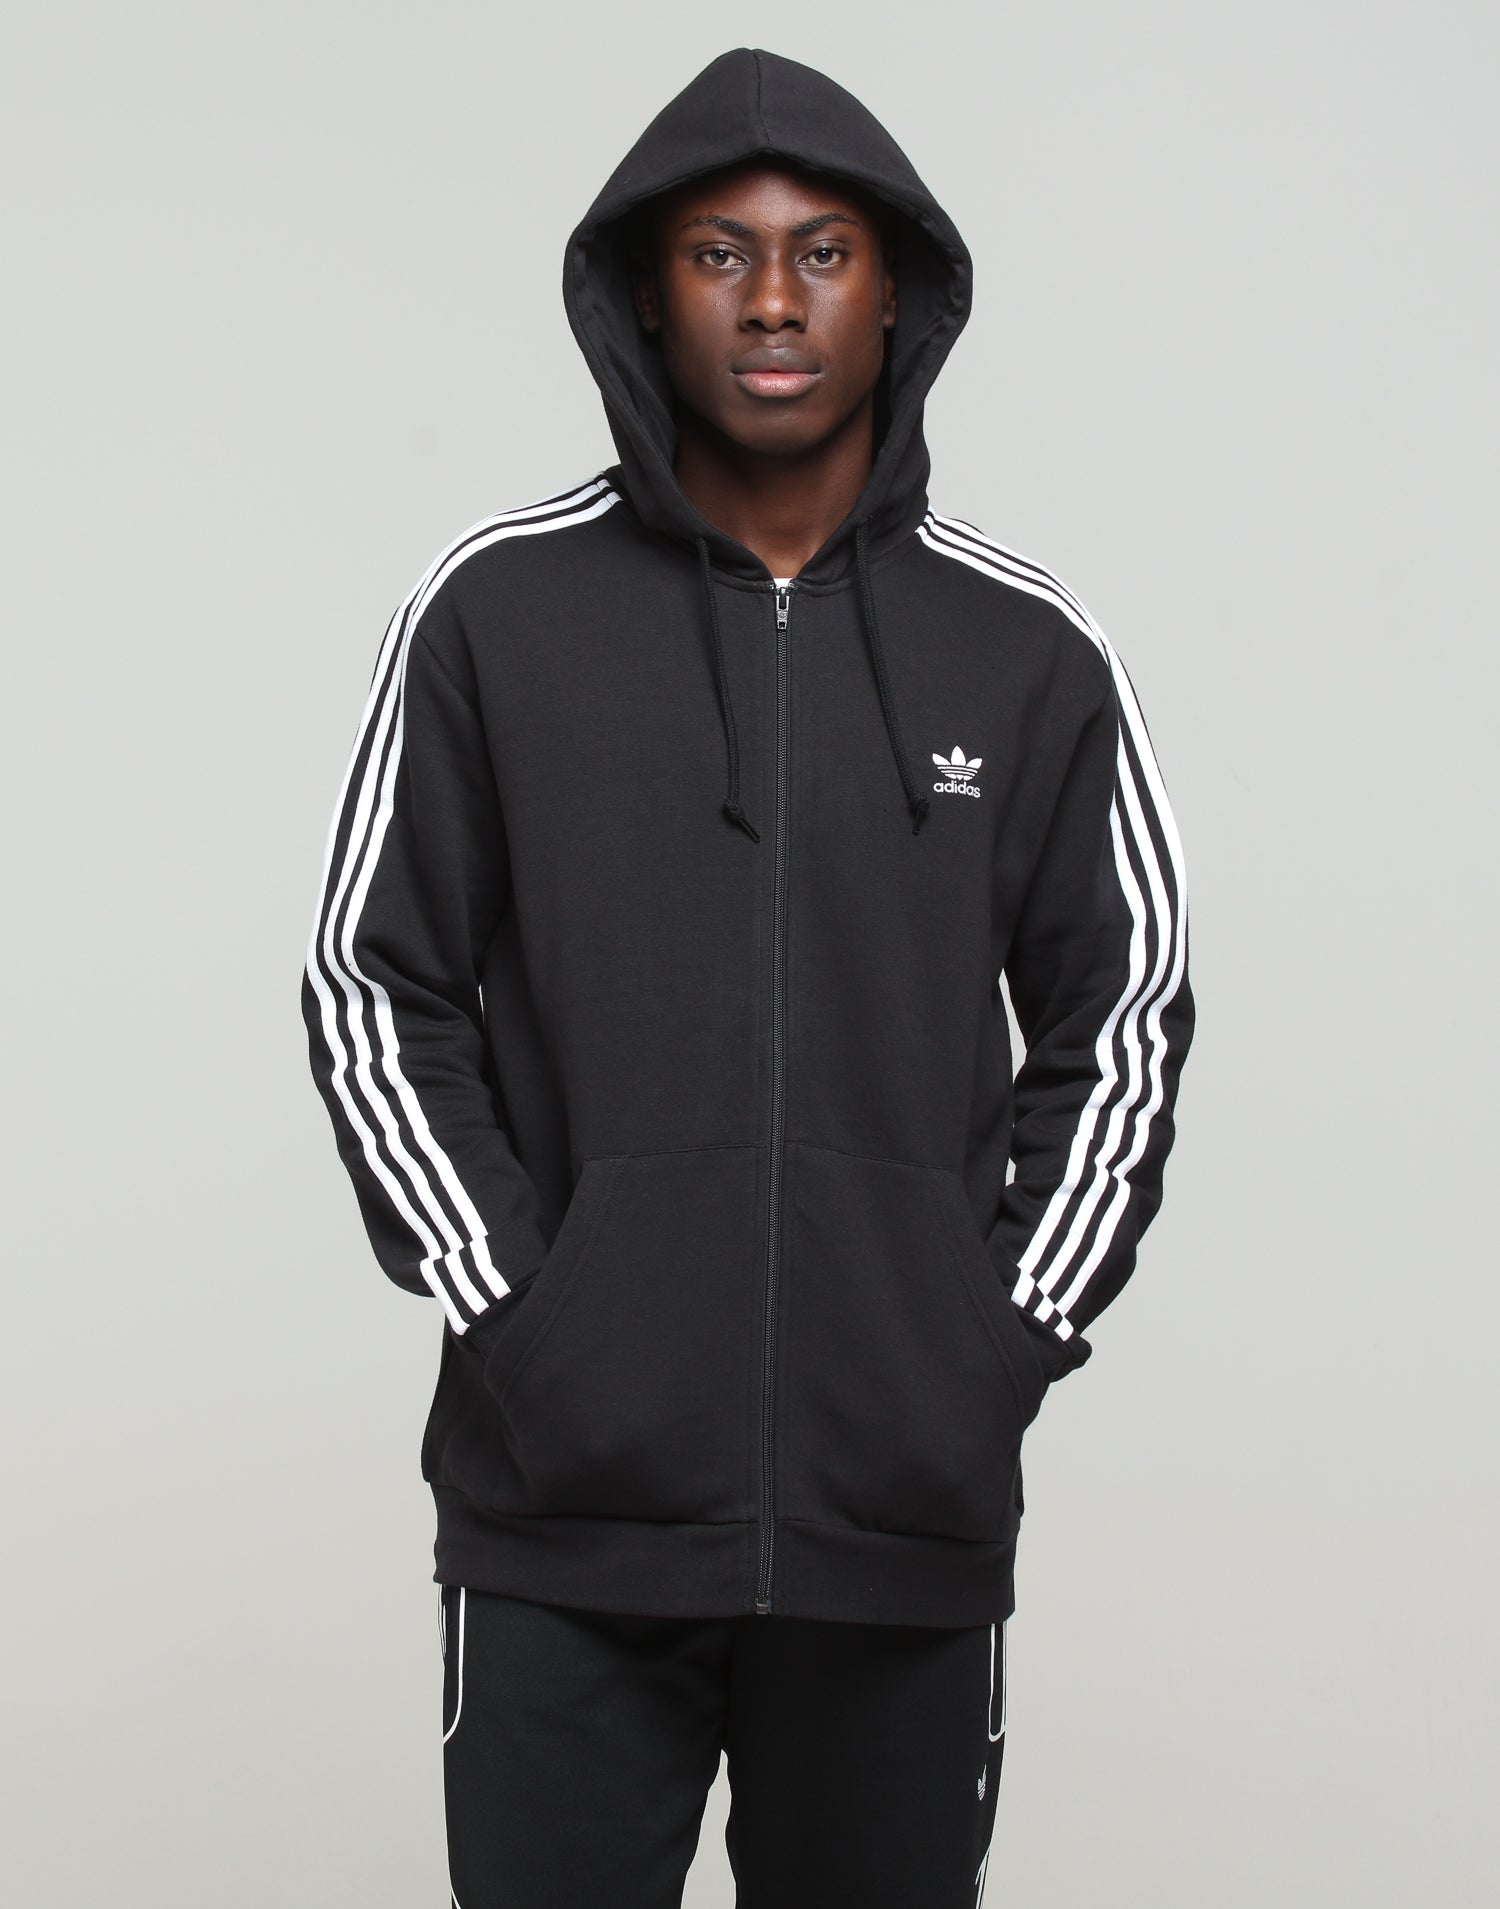 Spectacular Sales for Adidas Originals 3 Stripes Full Zip